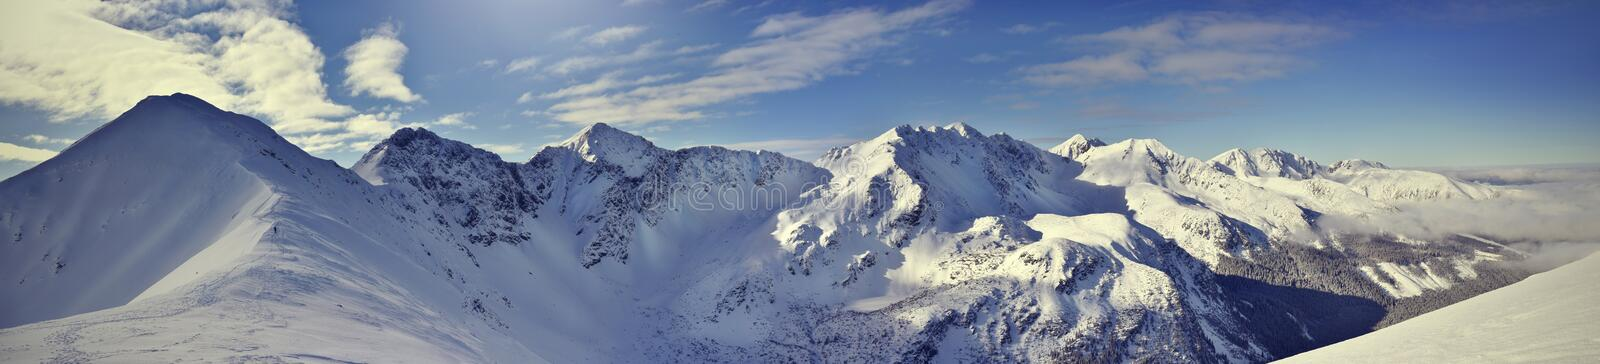 Vue panoramique de la montagne occidentale de Tatra d'hiver Rohace photo libre de droits